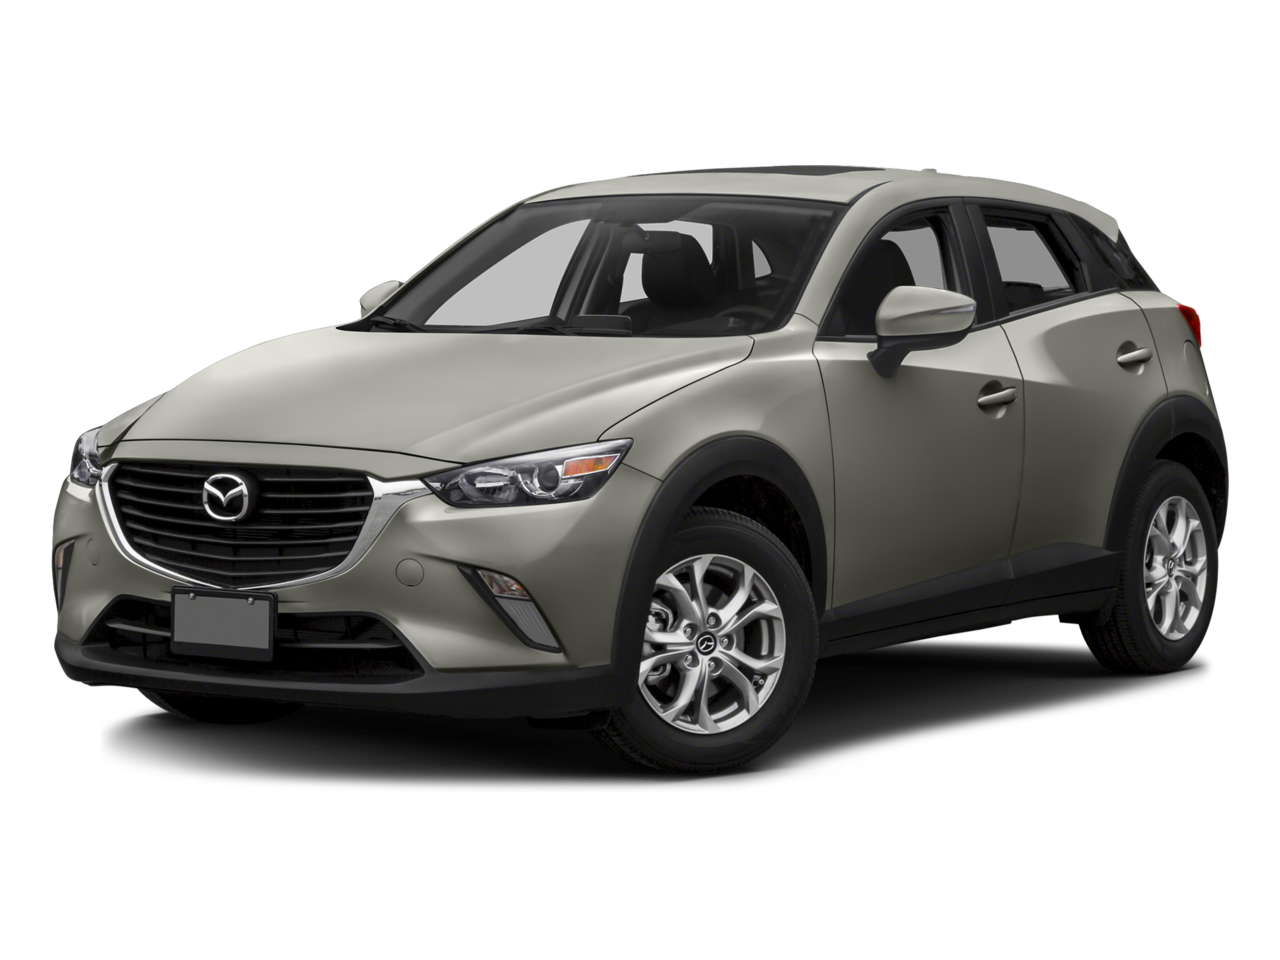 2016 mazda cx 3 naperville. Black Bedroom Furniture Sets. Home Design Ideas